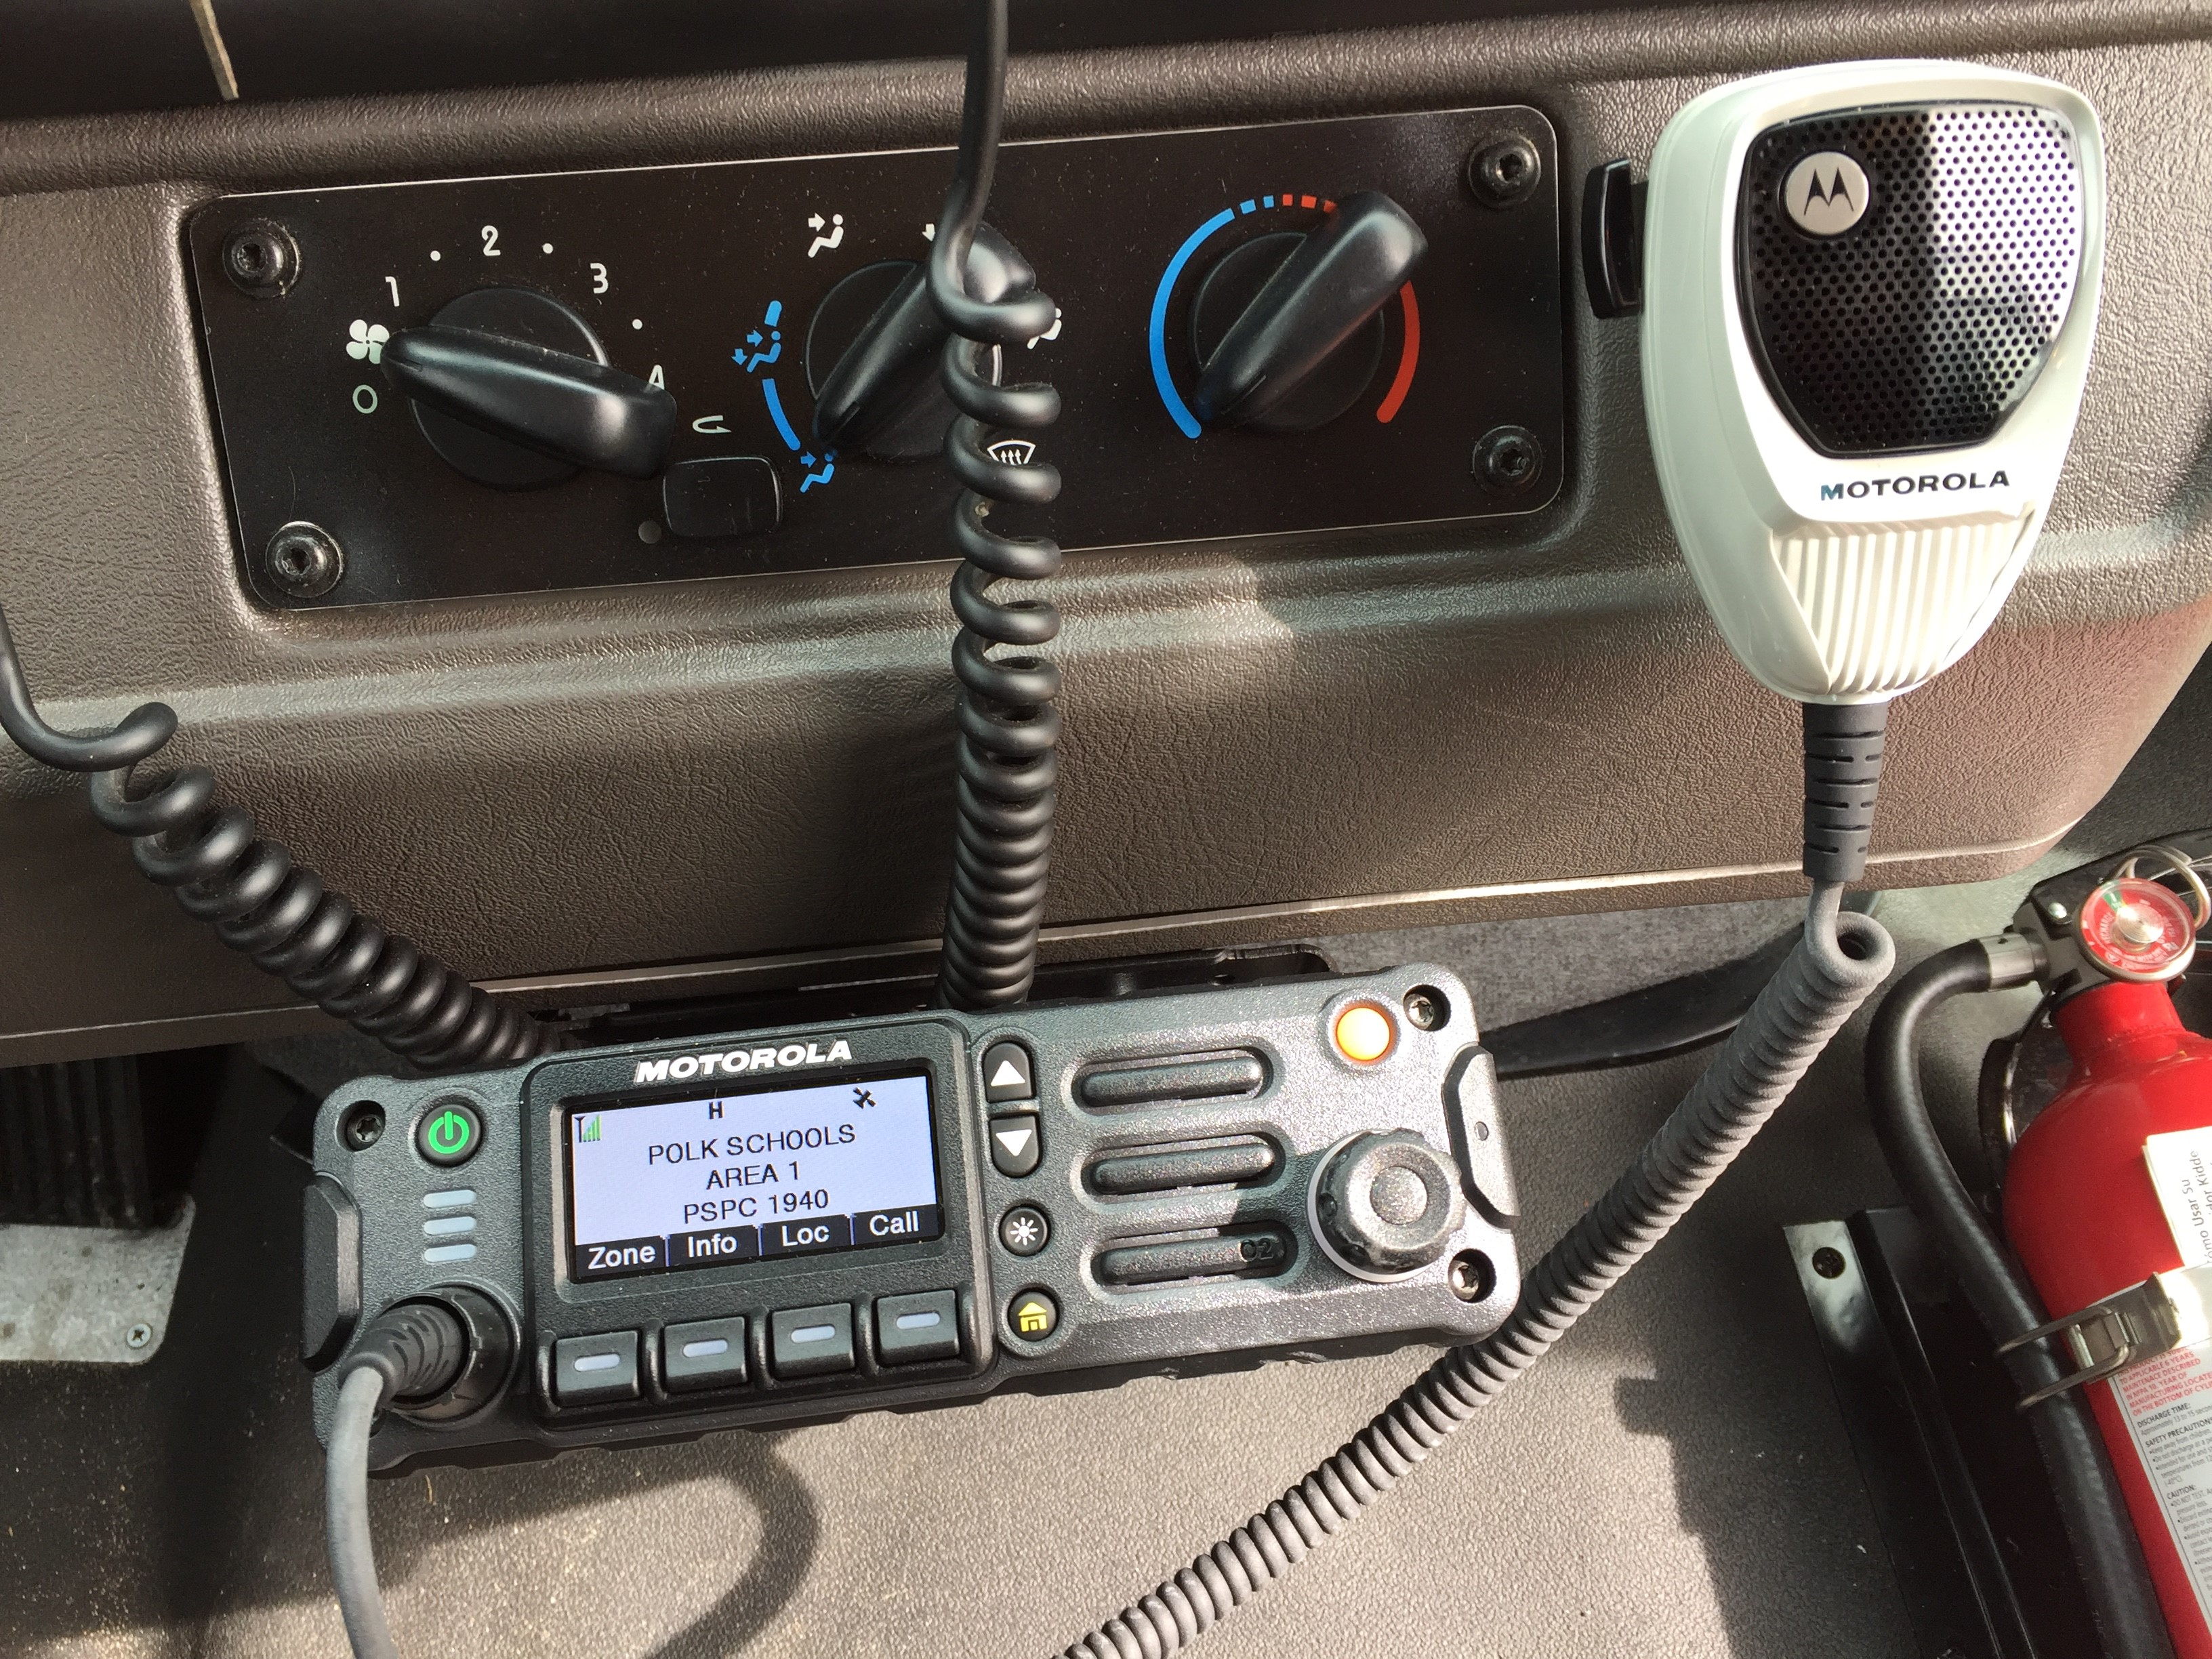 New radio used by PCPS school buses